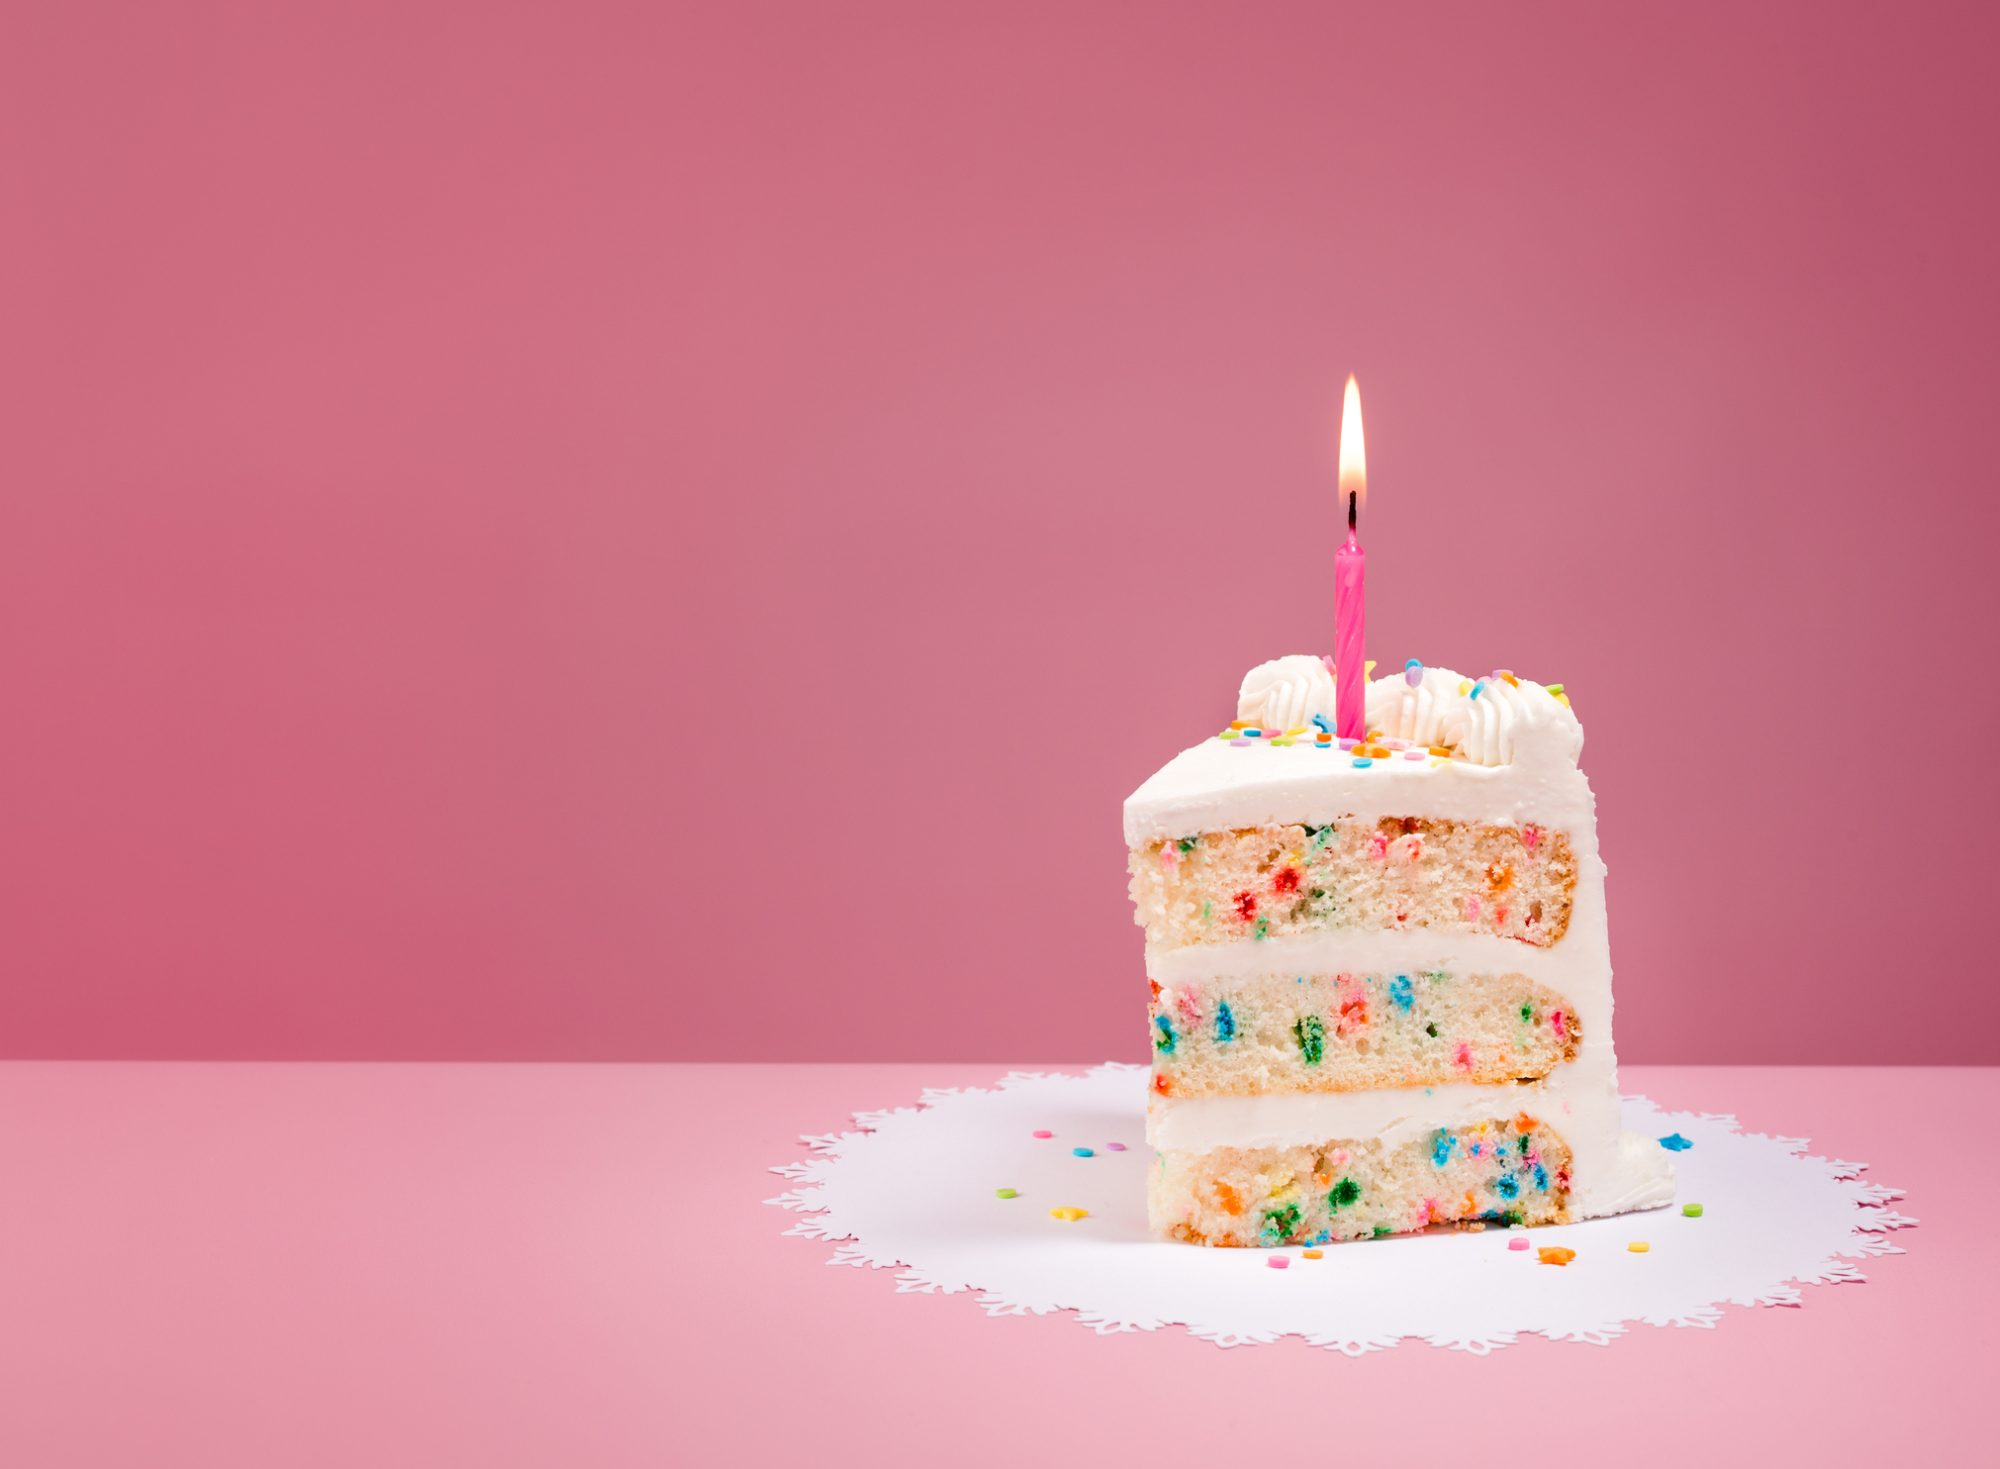 Blowing Out Birthday Candles Could Ruin the Cake Food Wine